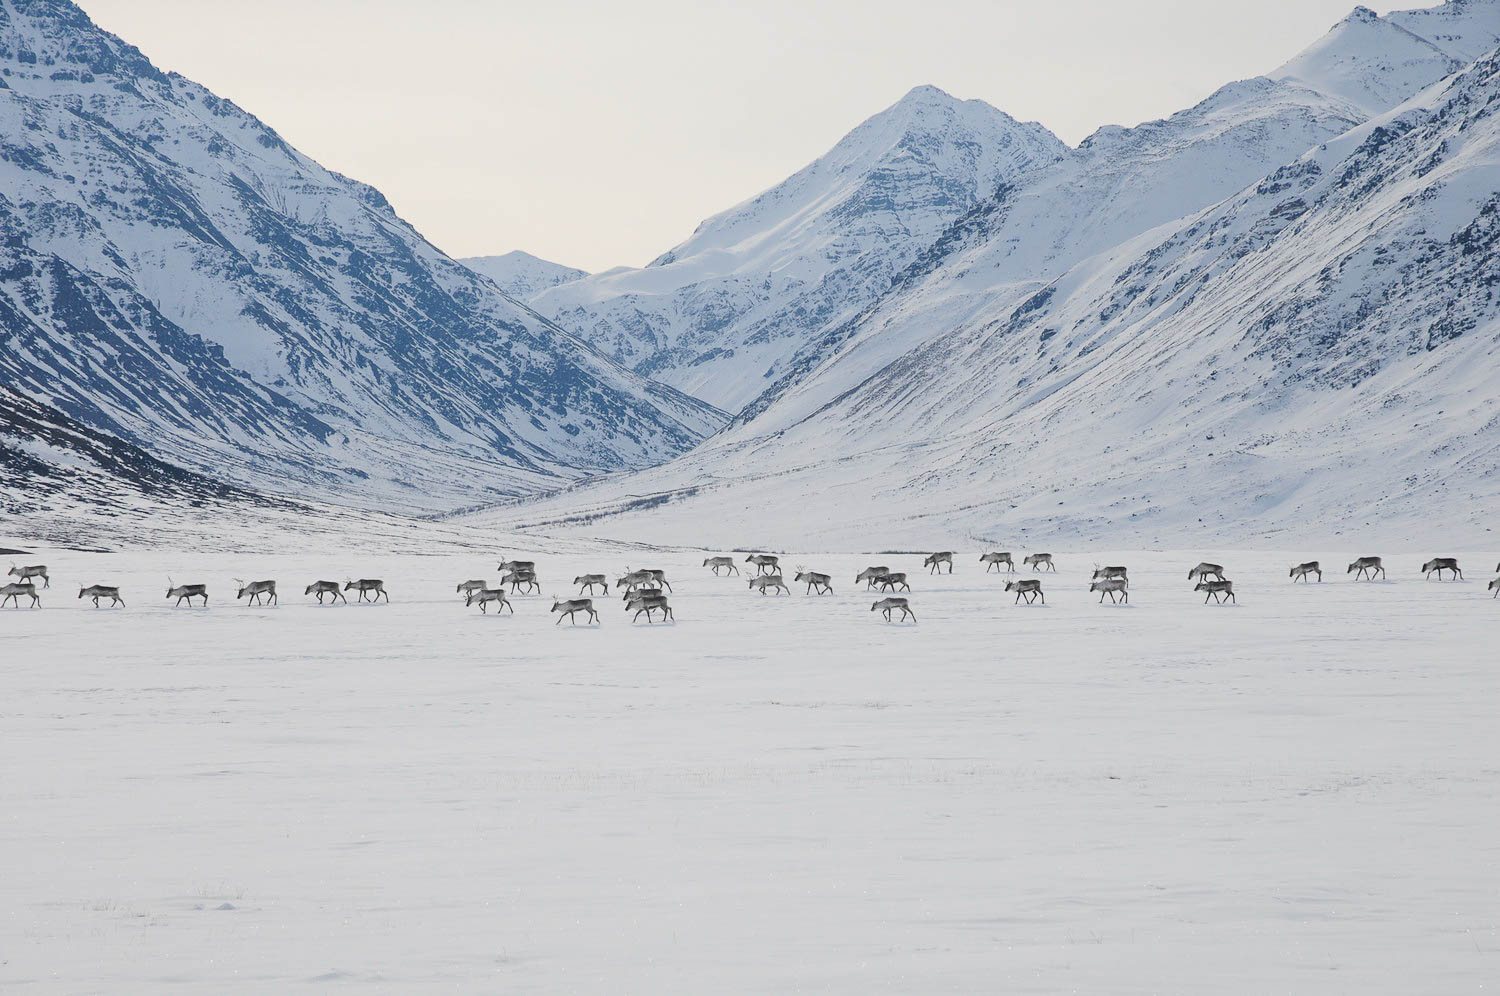 Caribou migrating in Gates of the Arctic National Park, April 2012. (Zak Richter / NPS)